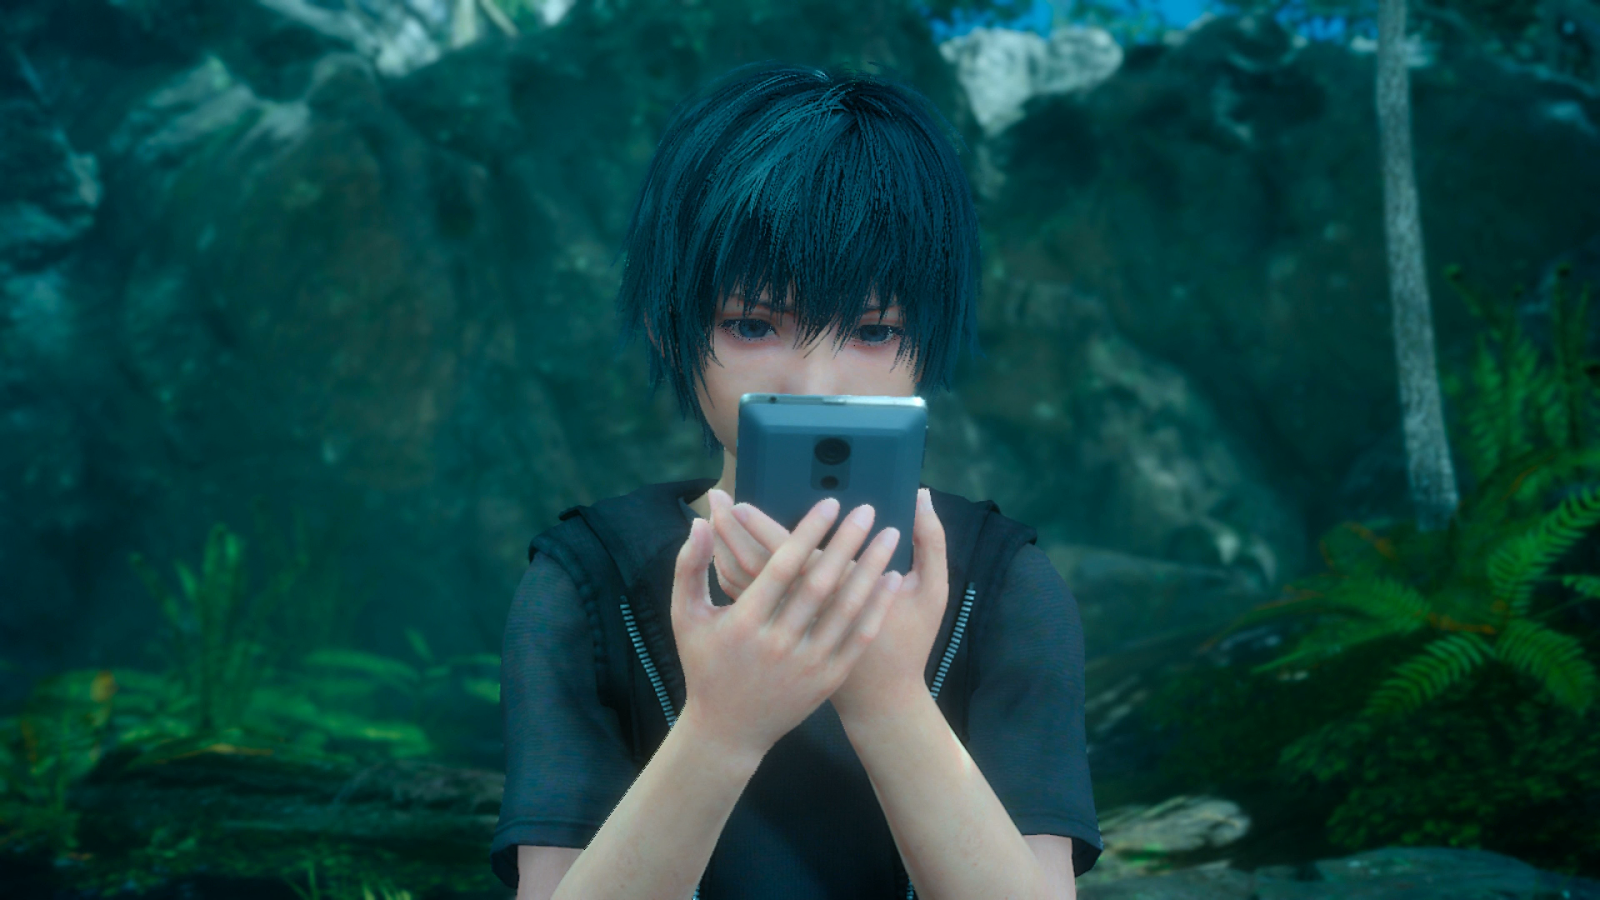 How to Find the Powerful Secret Weapon in the New Final Fantasy XV Platinum Demo